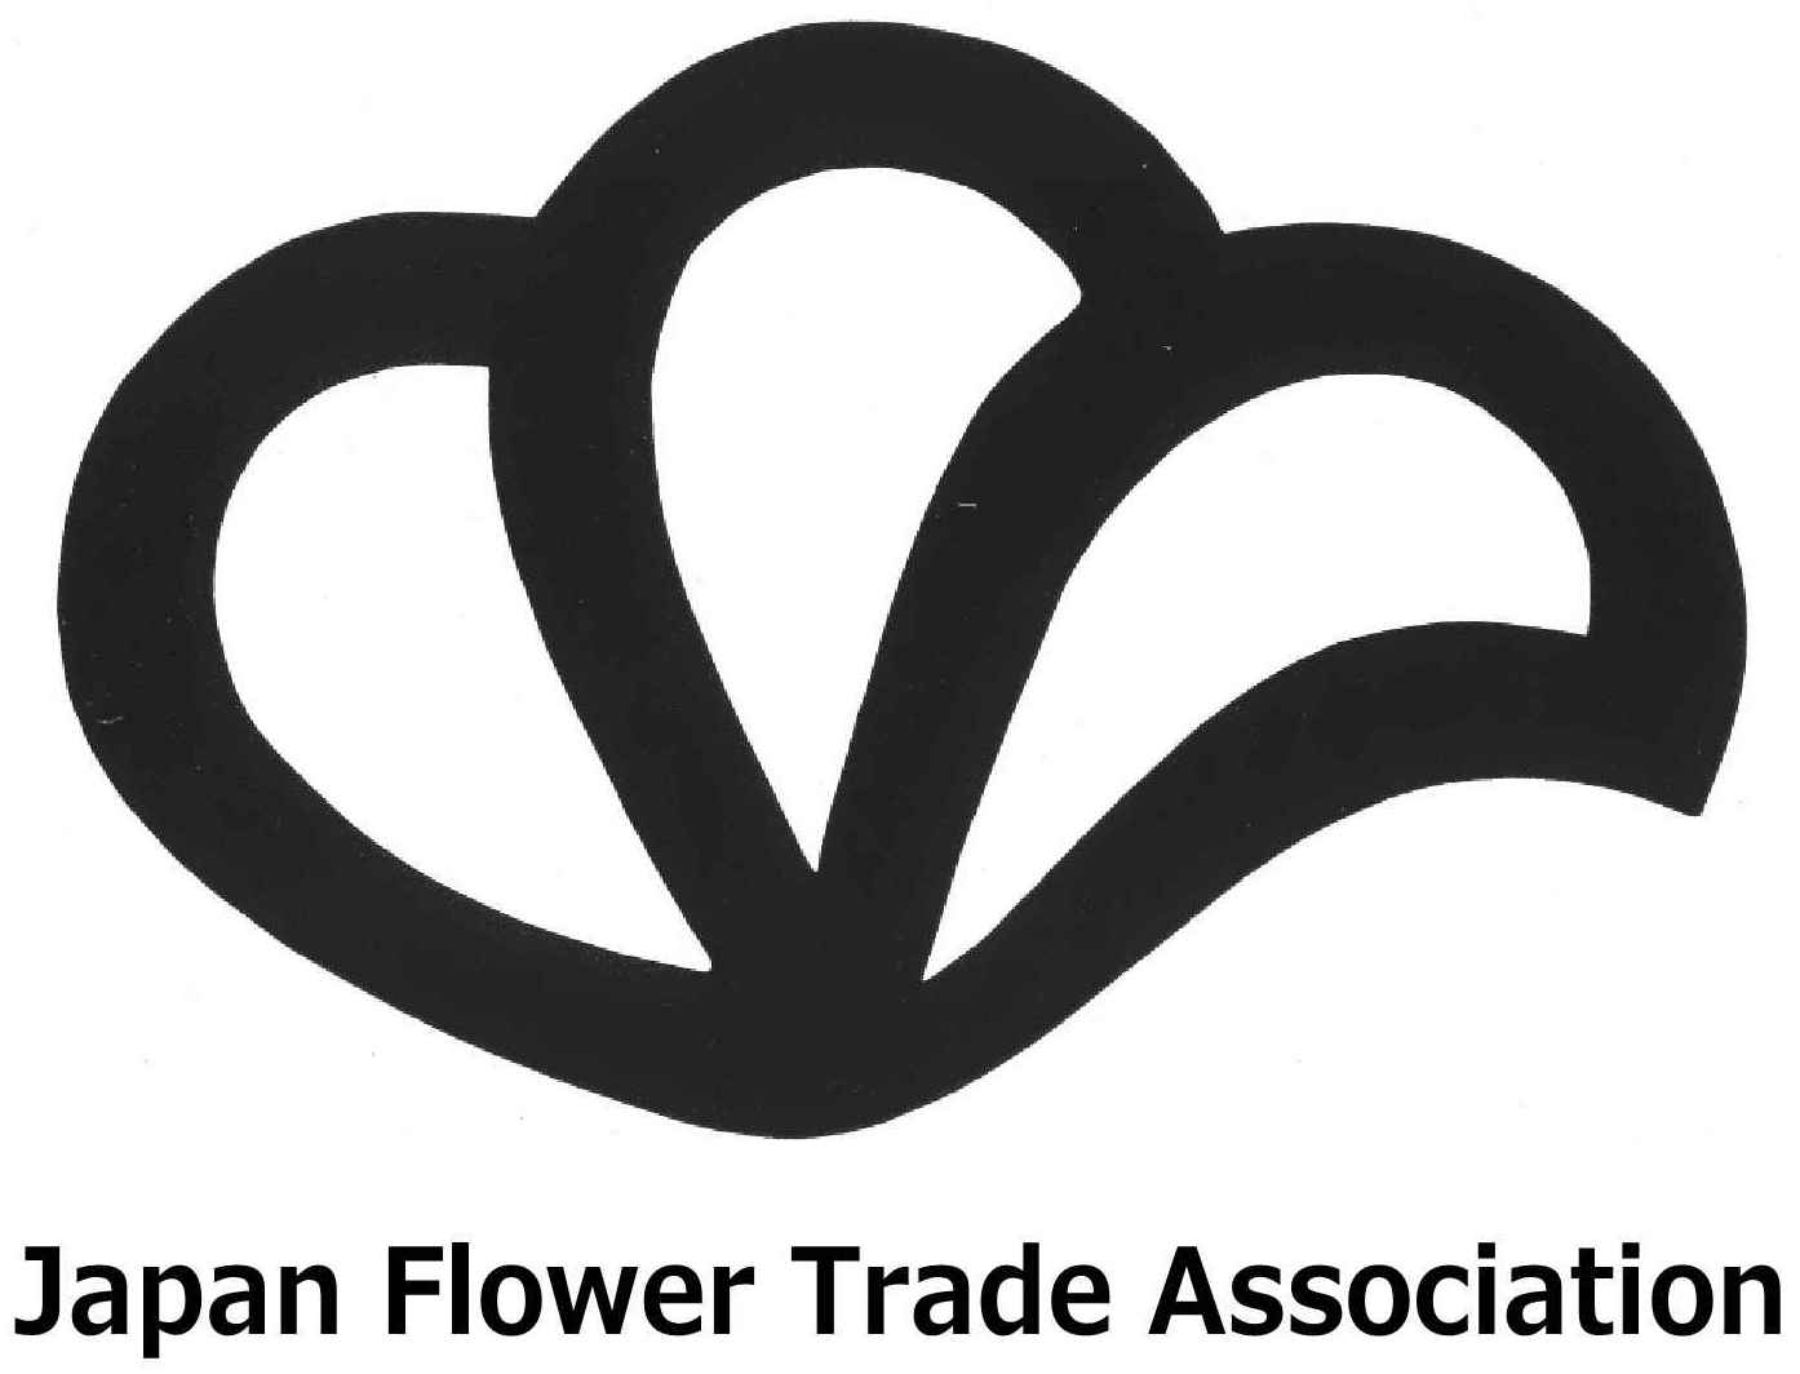 Japan Flower Trade Association Logo